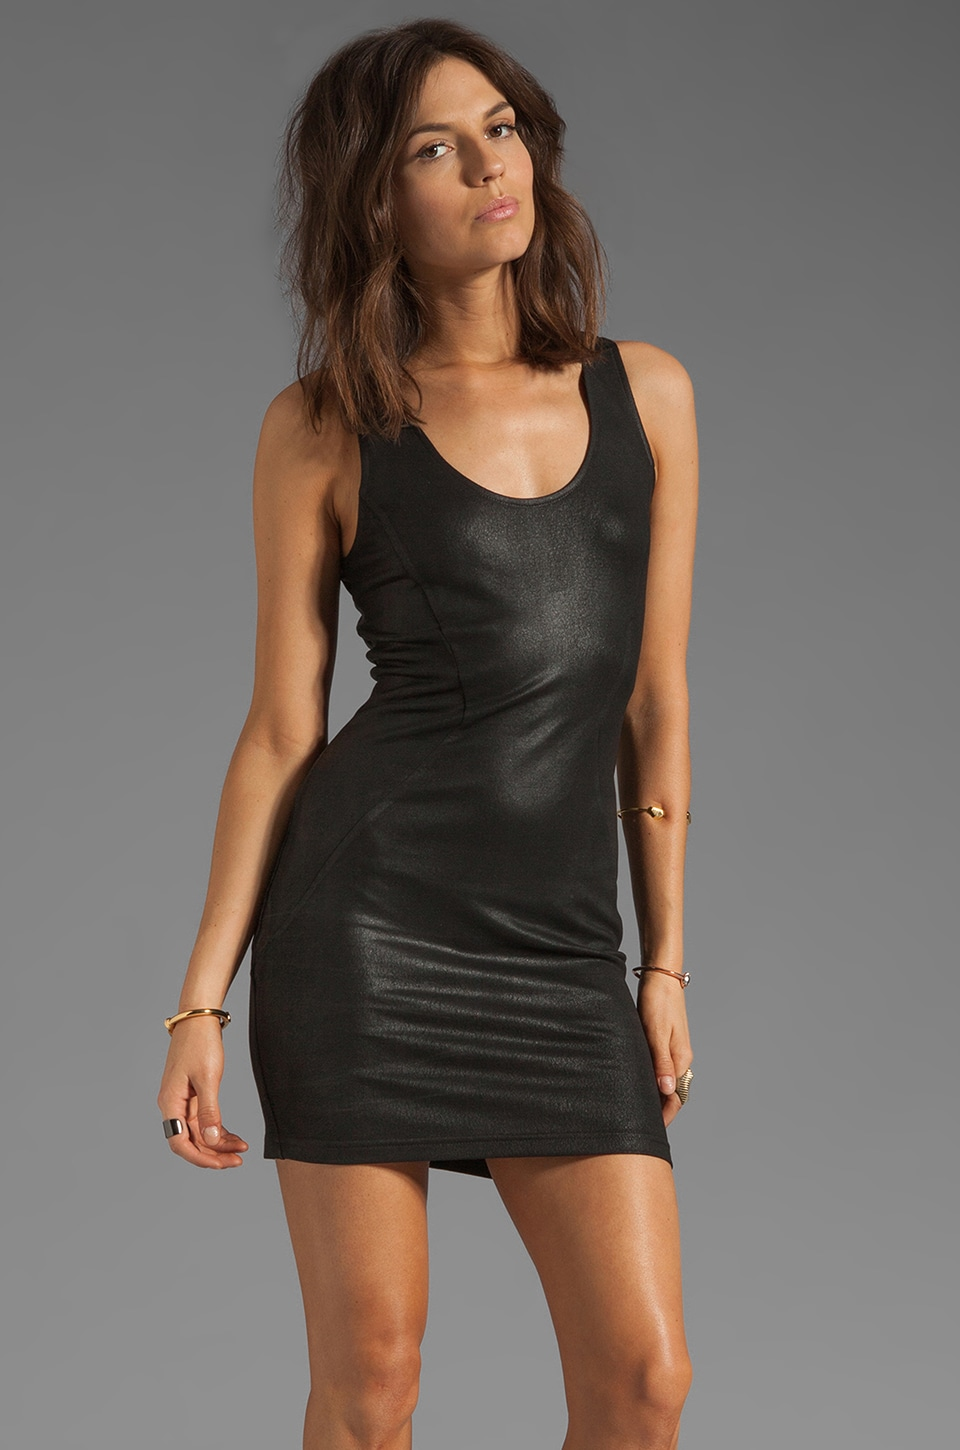 krisa Coated Dress in Black